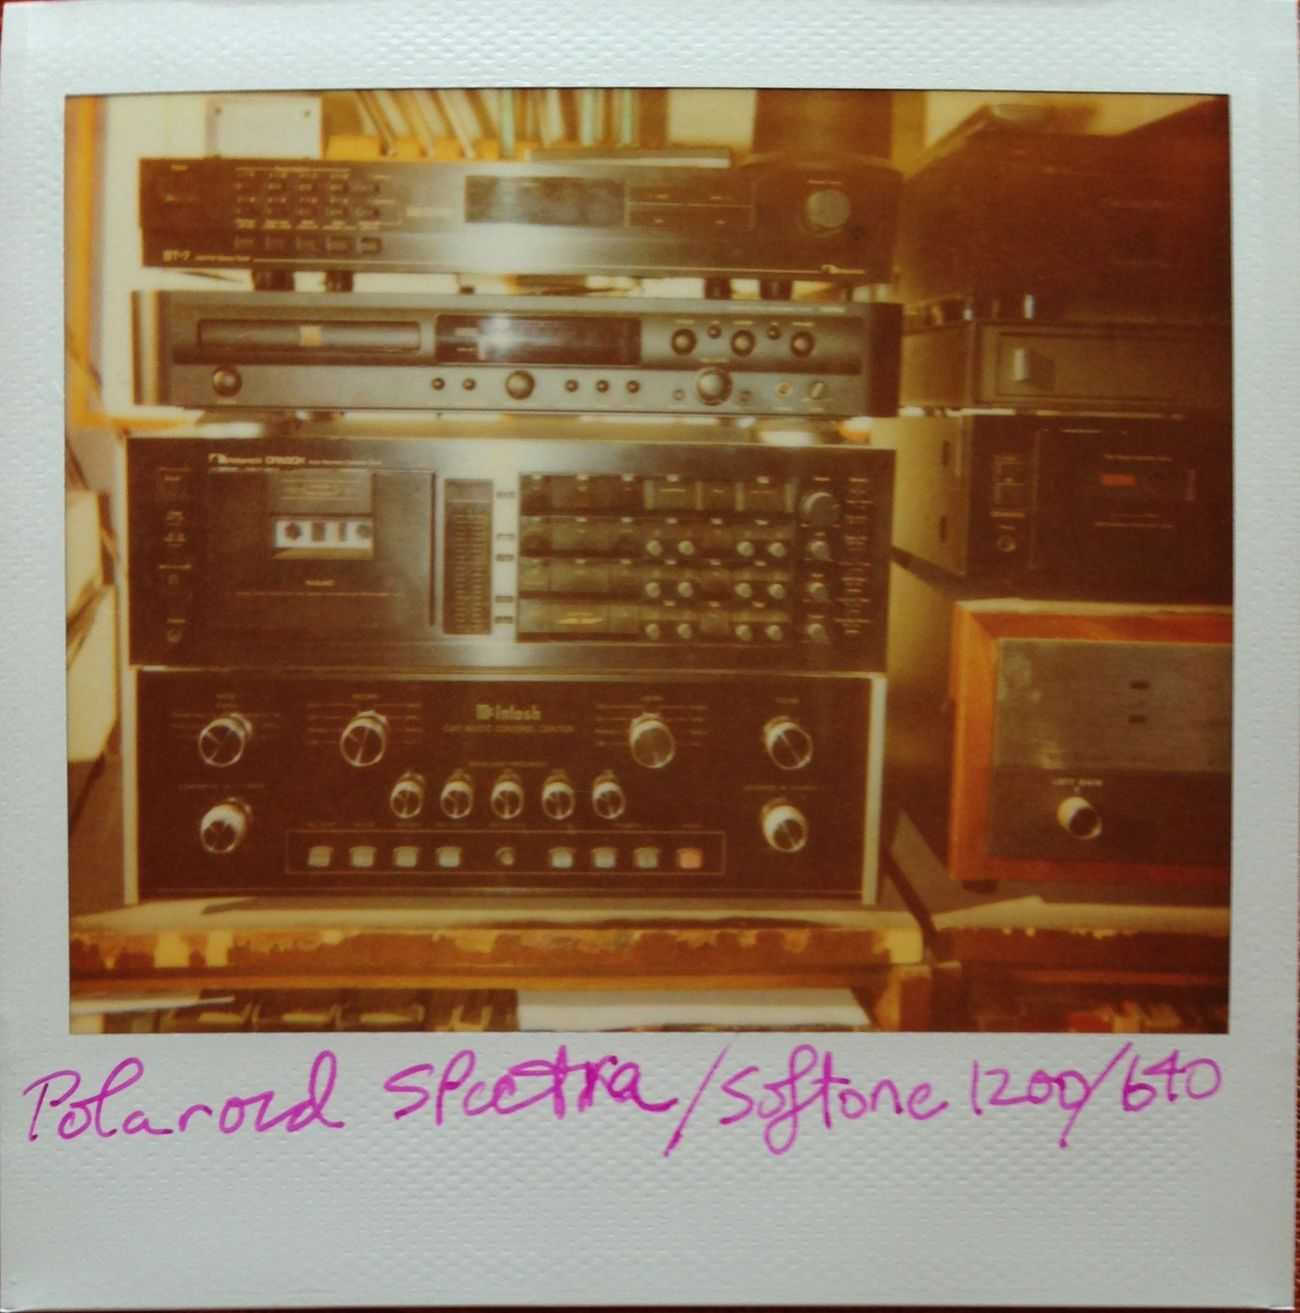 dad's stereo Polaroid Stereo Tape Deck Hifi